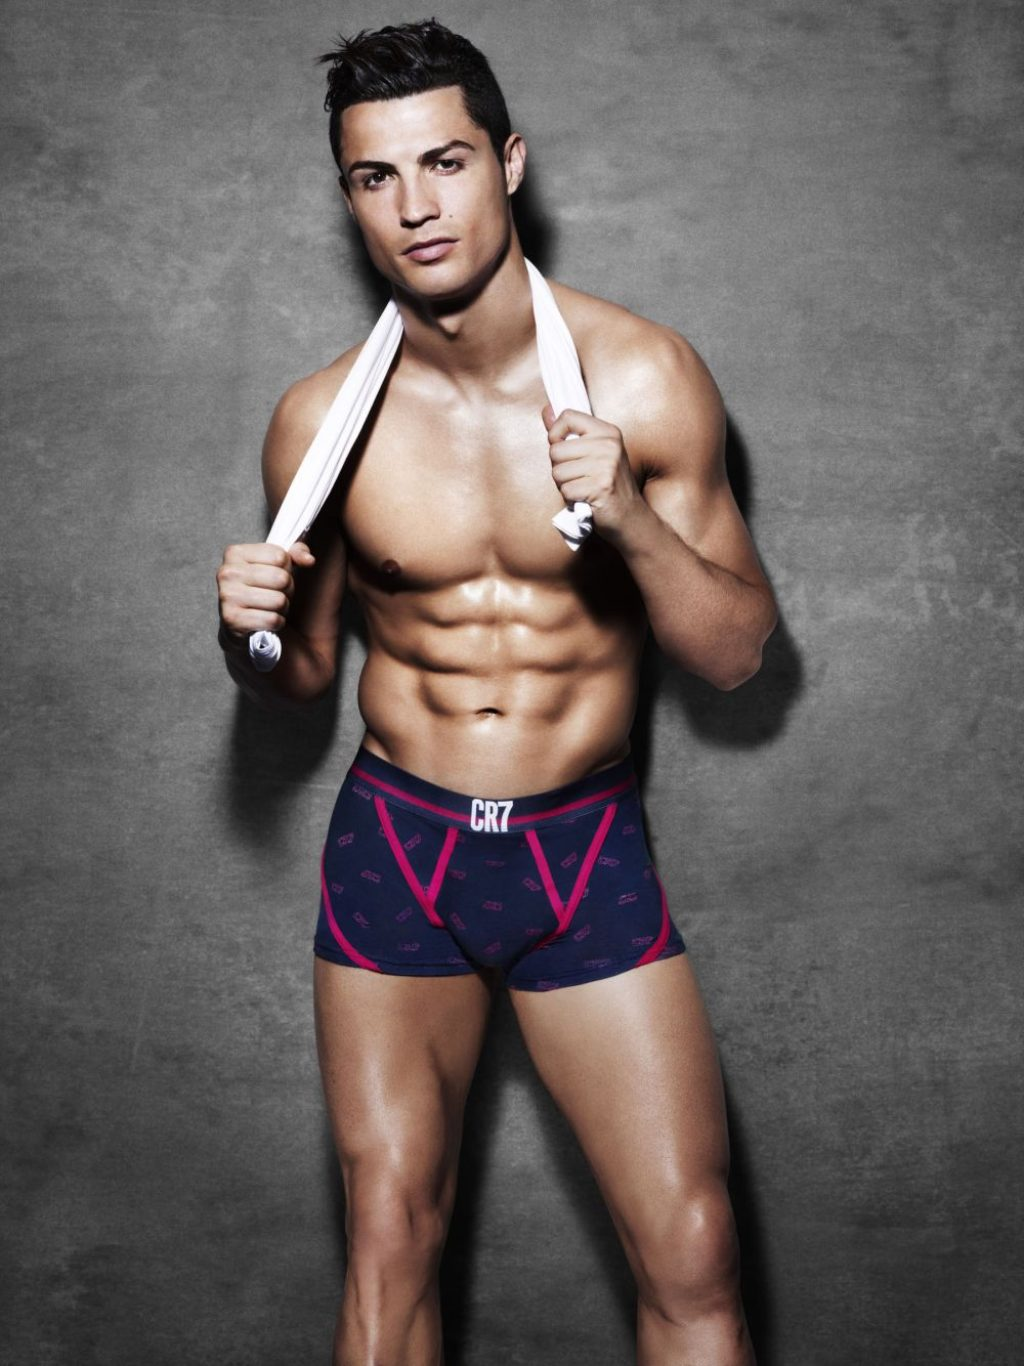 Cristiano Ronaldo looking smoking hot with 6-pack abs and tight blue and pink CR7 briefs